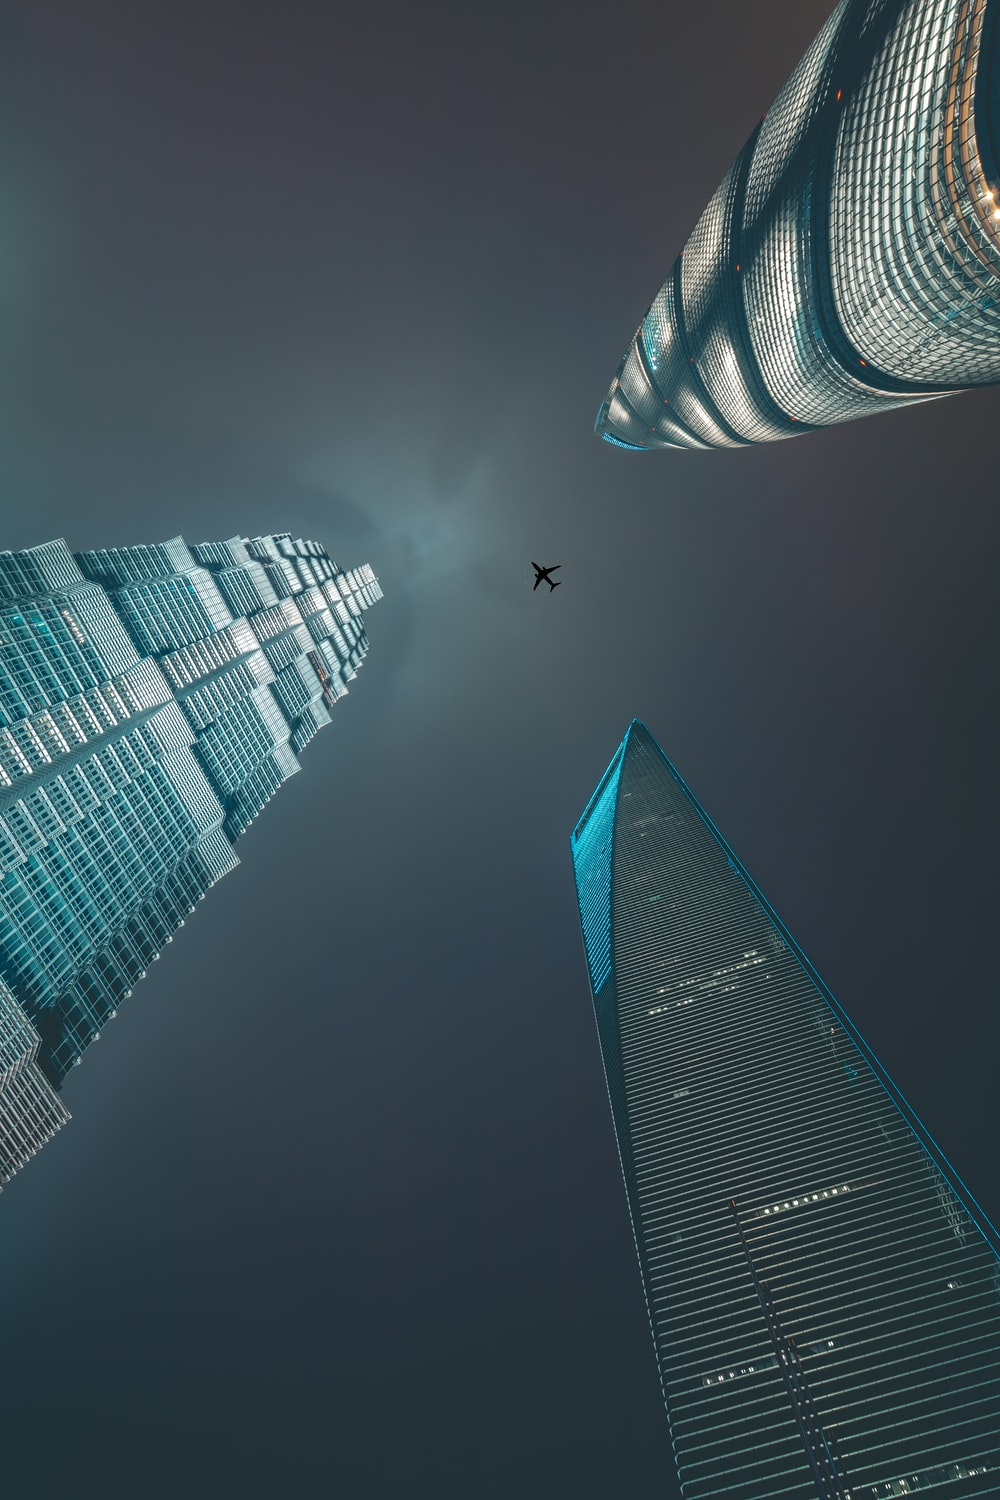 airliner flying over three high-rise buildings